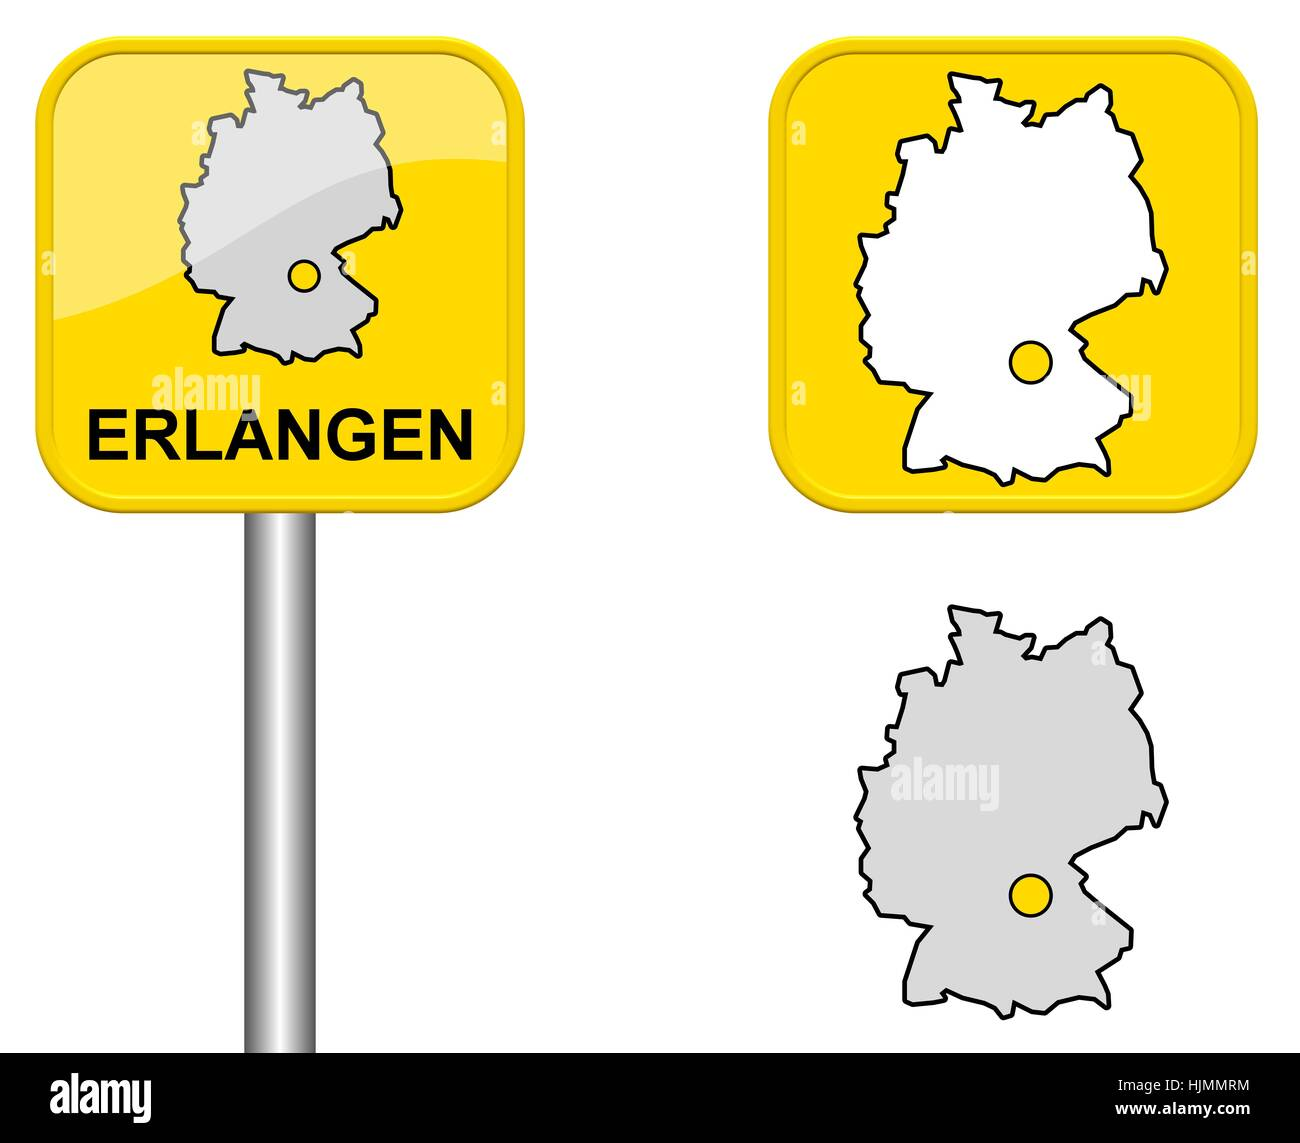 ortsschildgermany map and button of erlangen Stock Photo Royalty